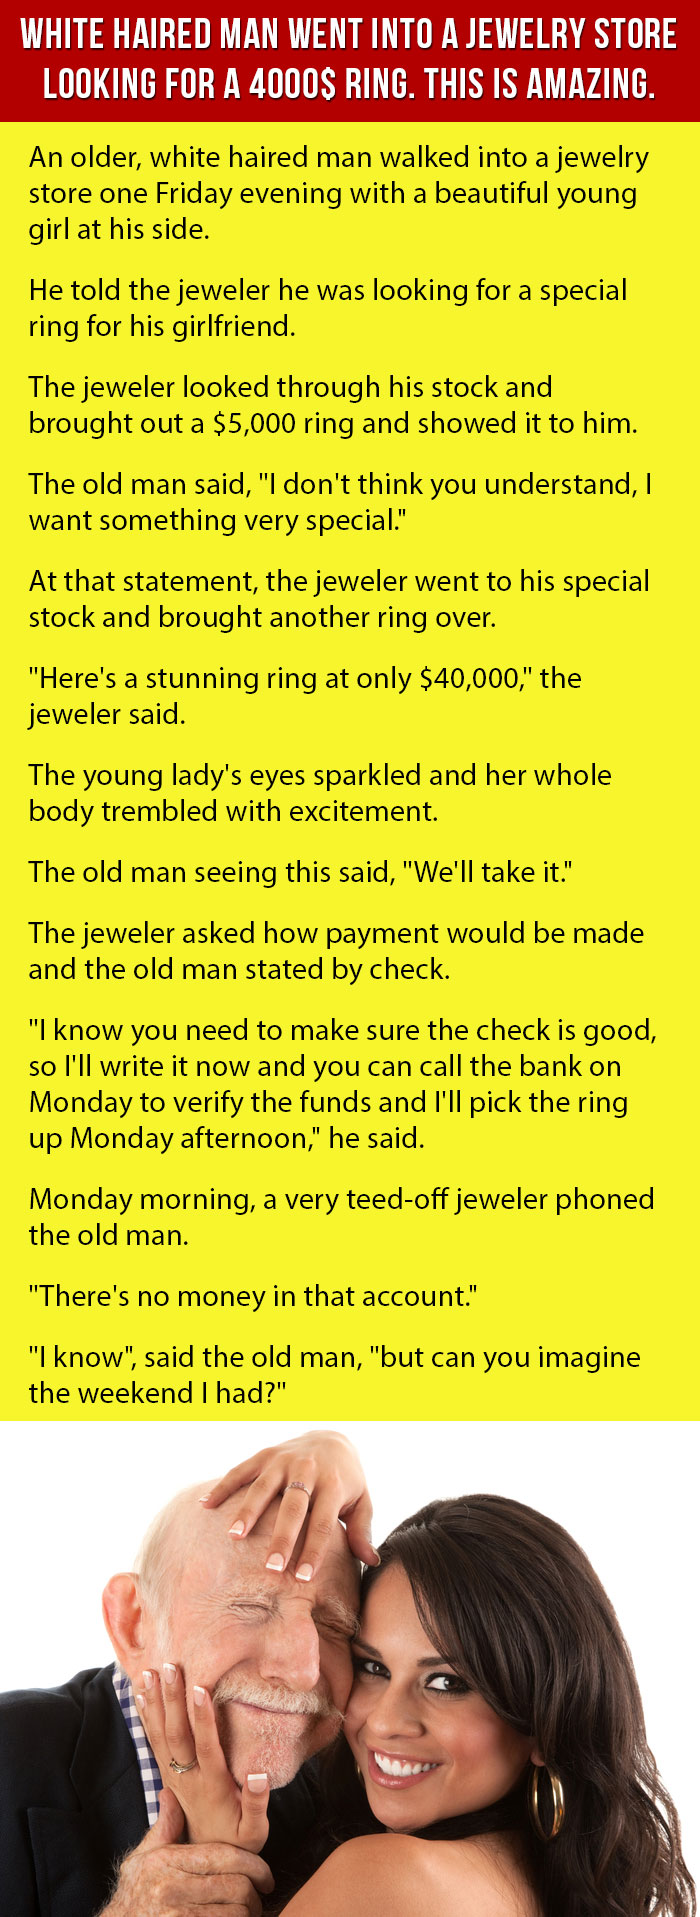 59545105f6f White Haired Man Went Into A Jewelry Store Looking For A 4000  Ring. This  Is Amazing.